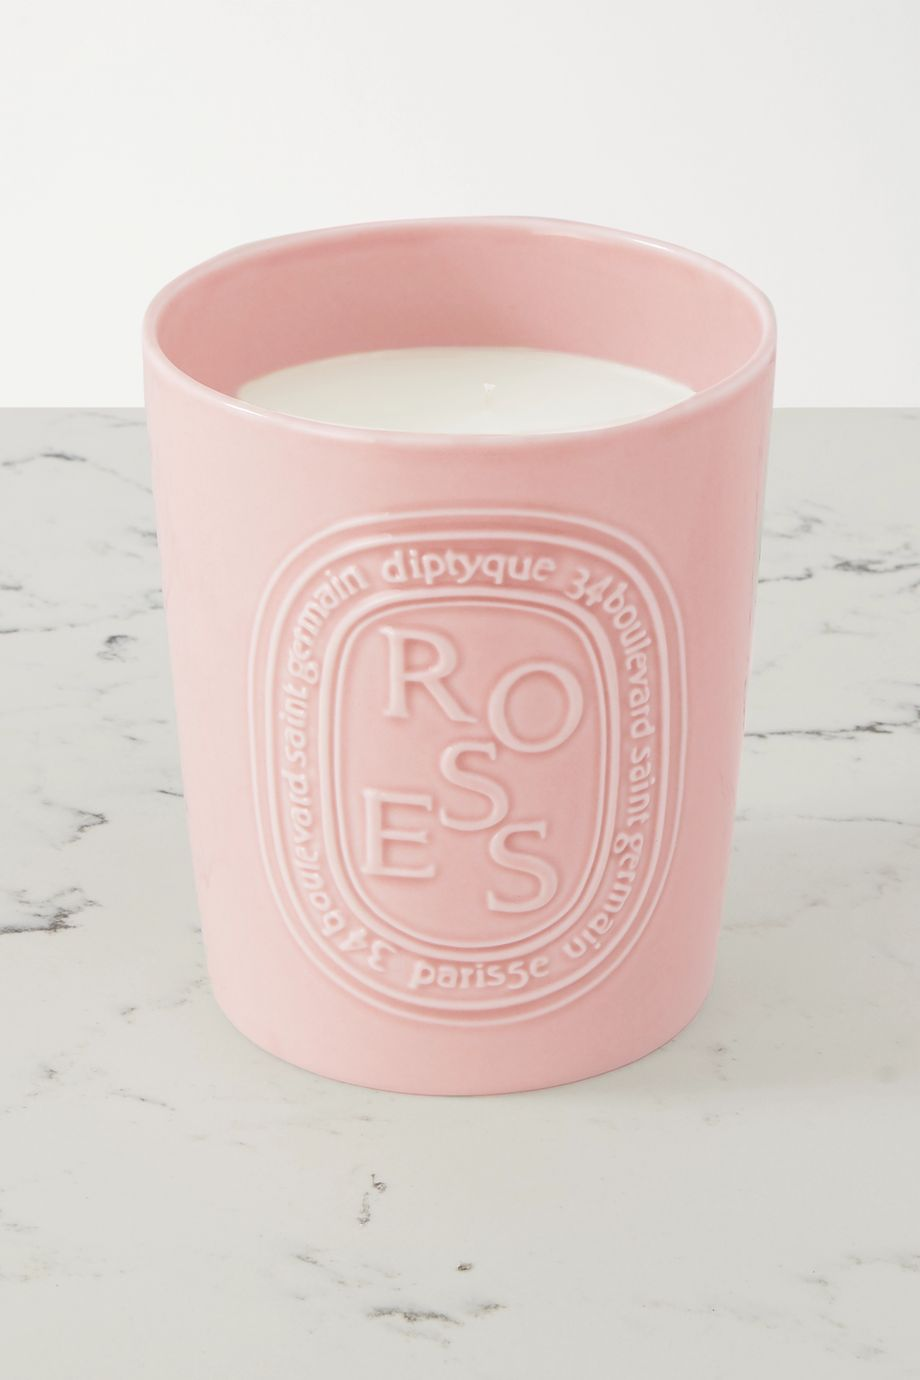 Diptyque Roses scented candle, 600g